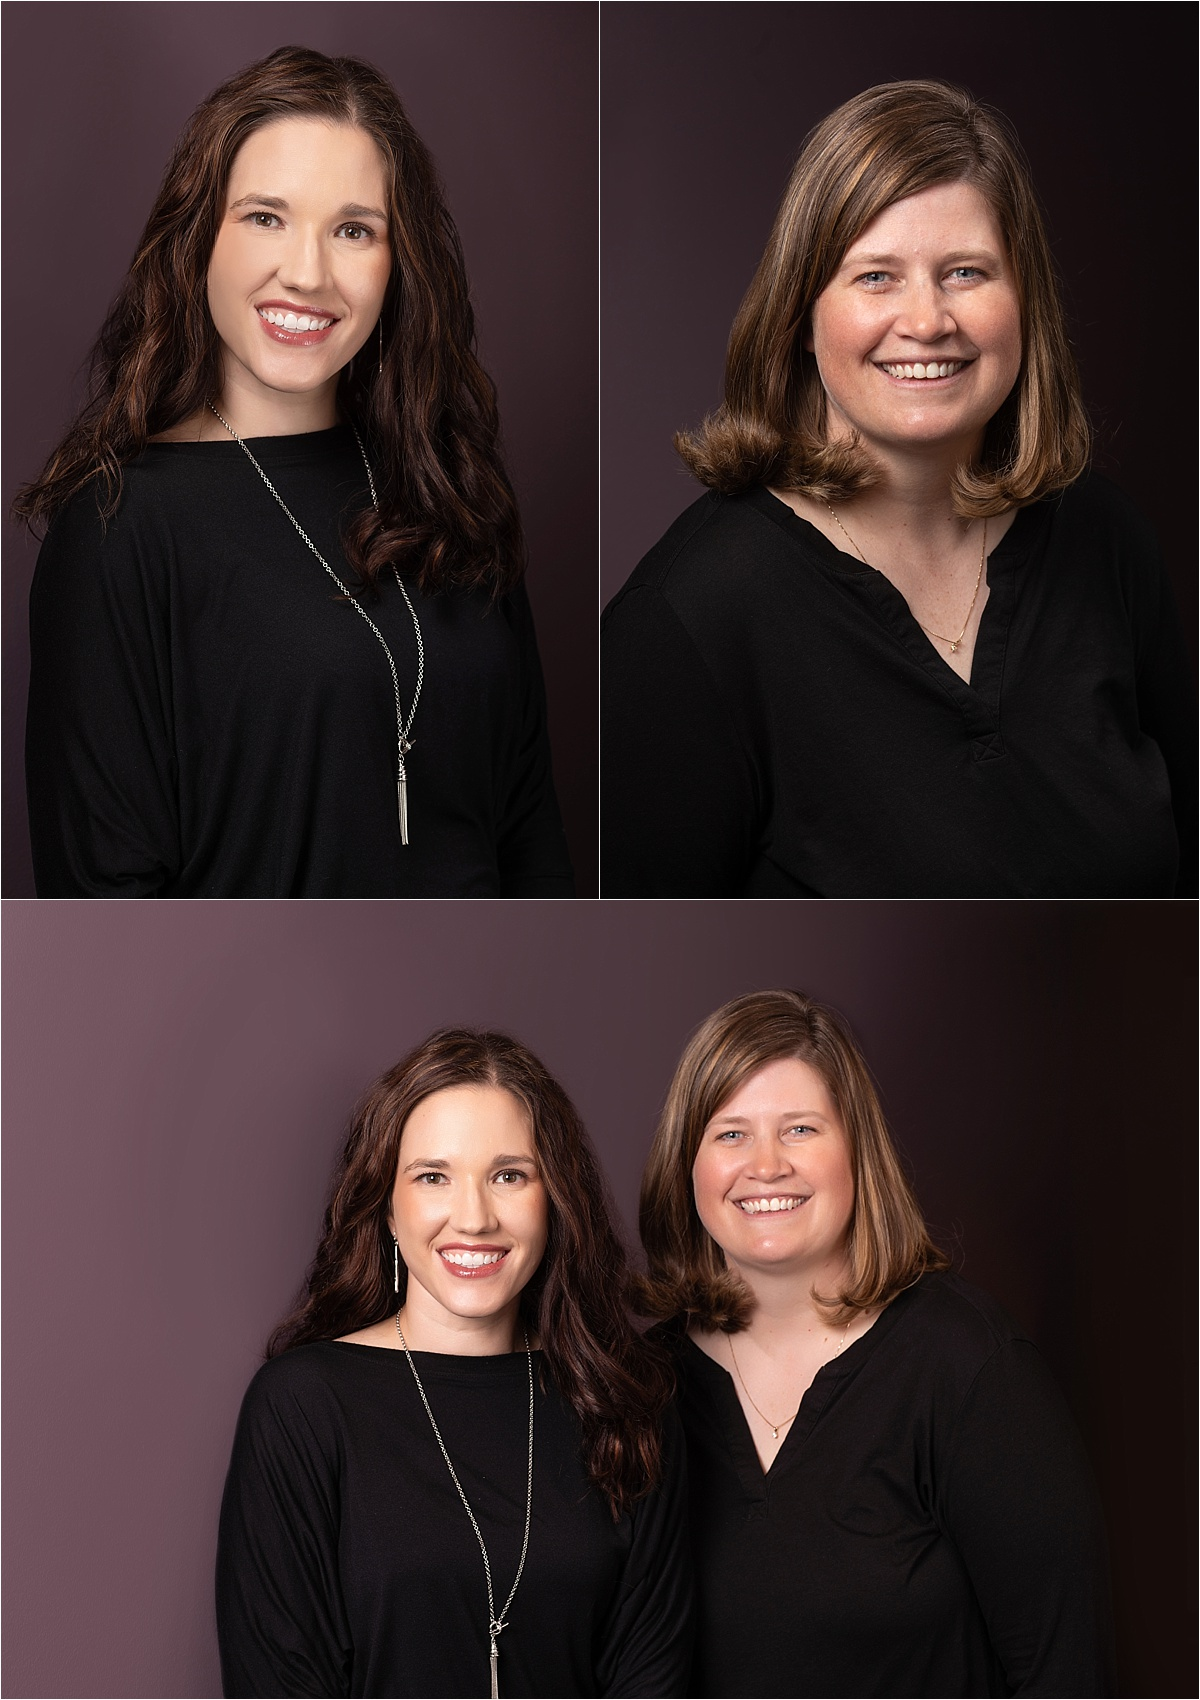 Dr. Meaghan S. Neuberger, D.D.S. and Dr. Stephanie Schmitz, D.D.S.